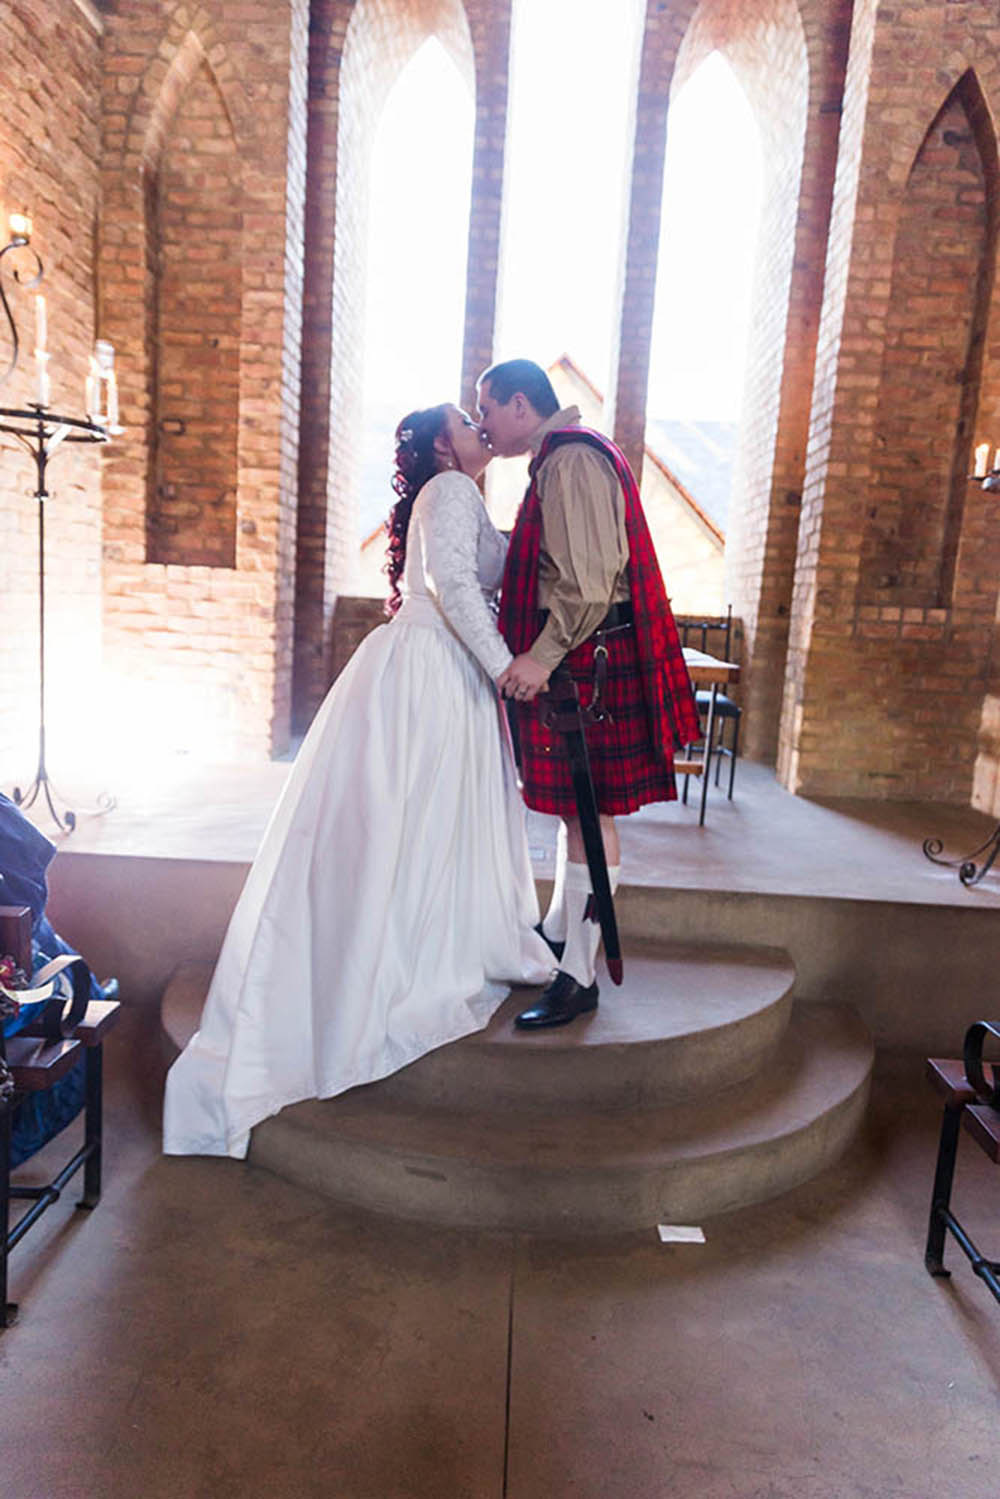 medieval-themed-wedding-medieval-wedding-dgr-photography-castle-wedding-75